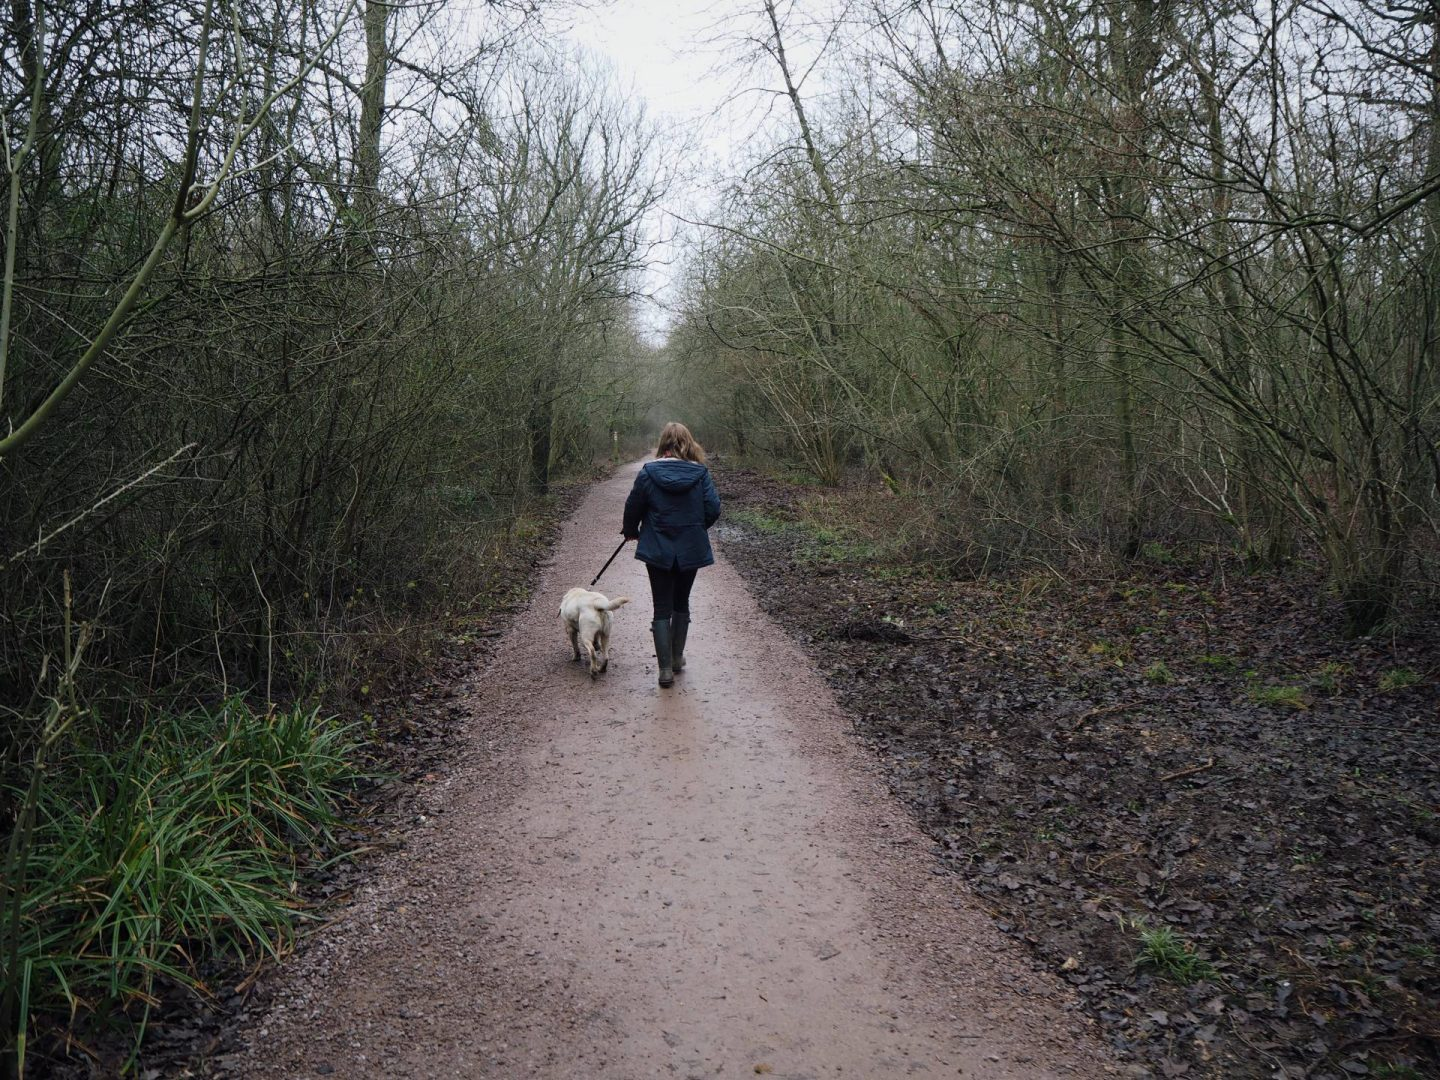 Girl walking away with a dog in Salcey Forest, Northamptonshire